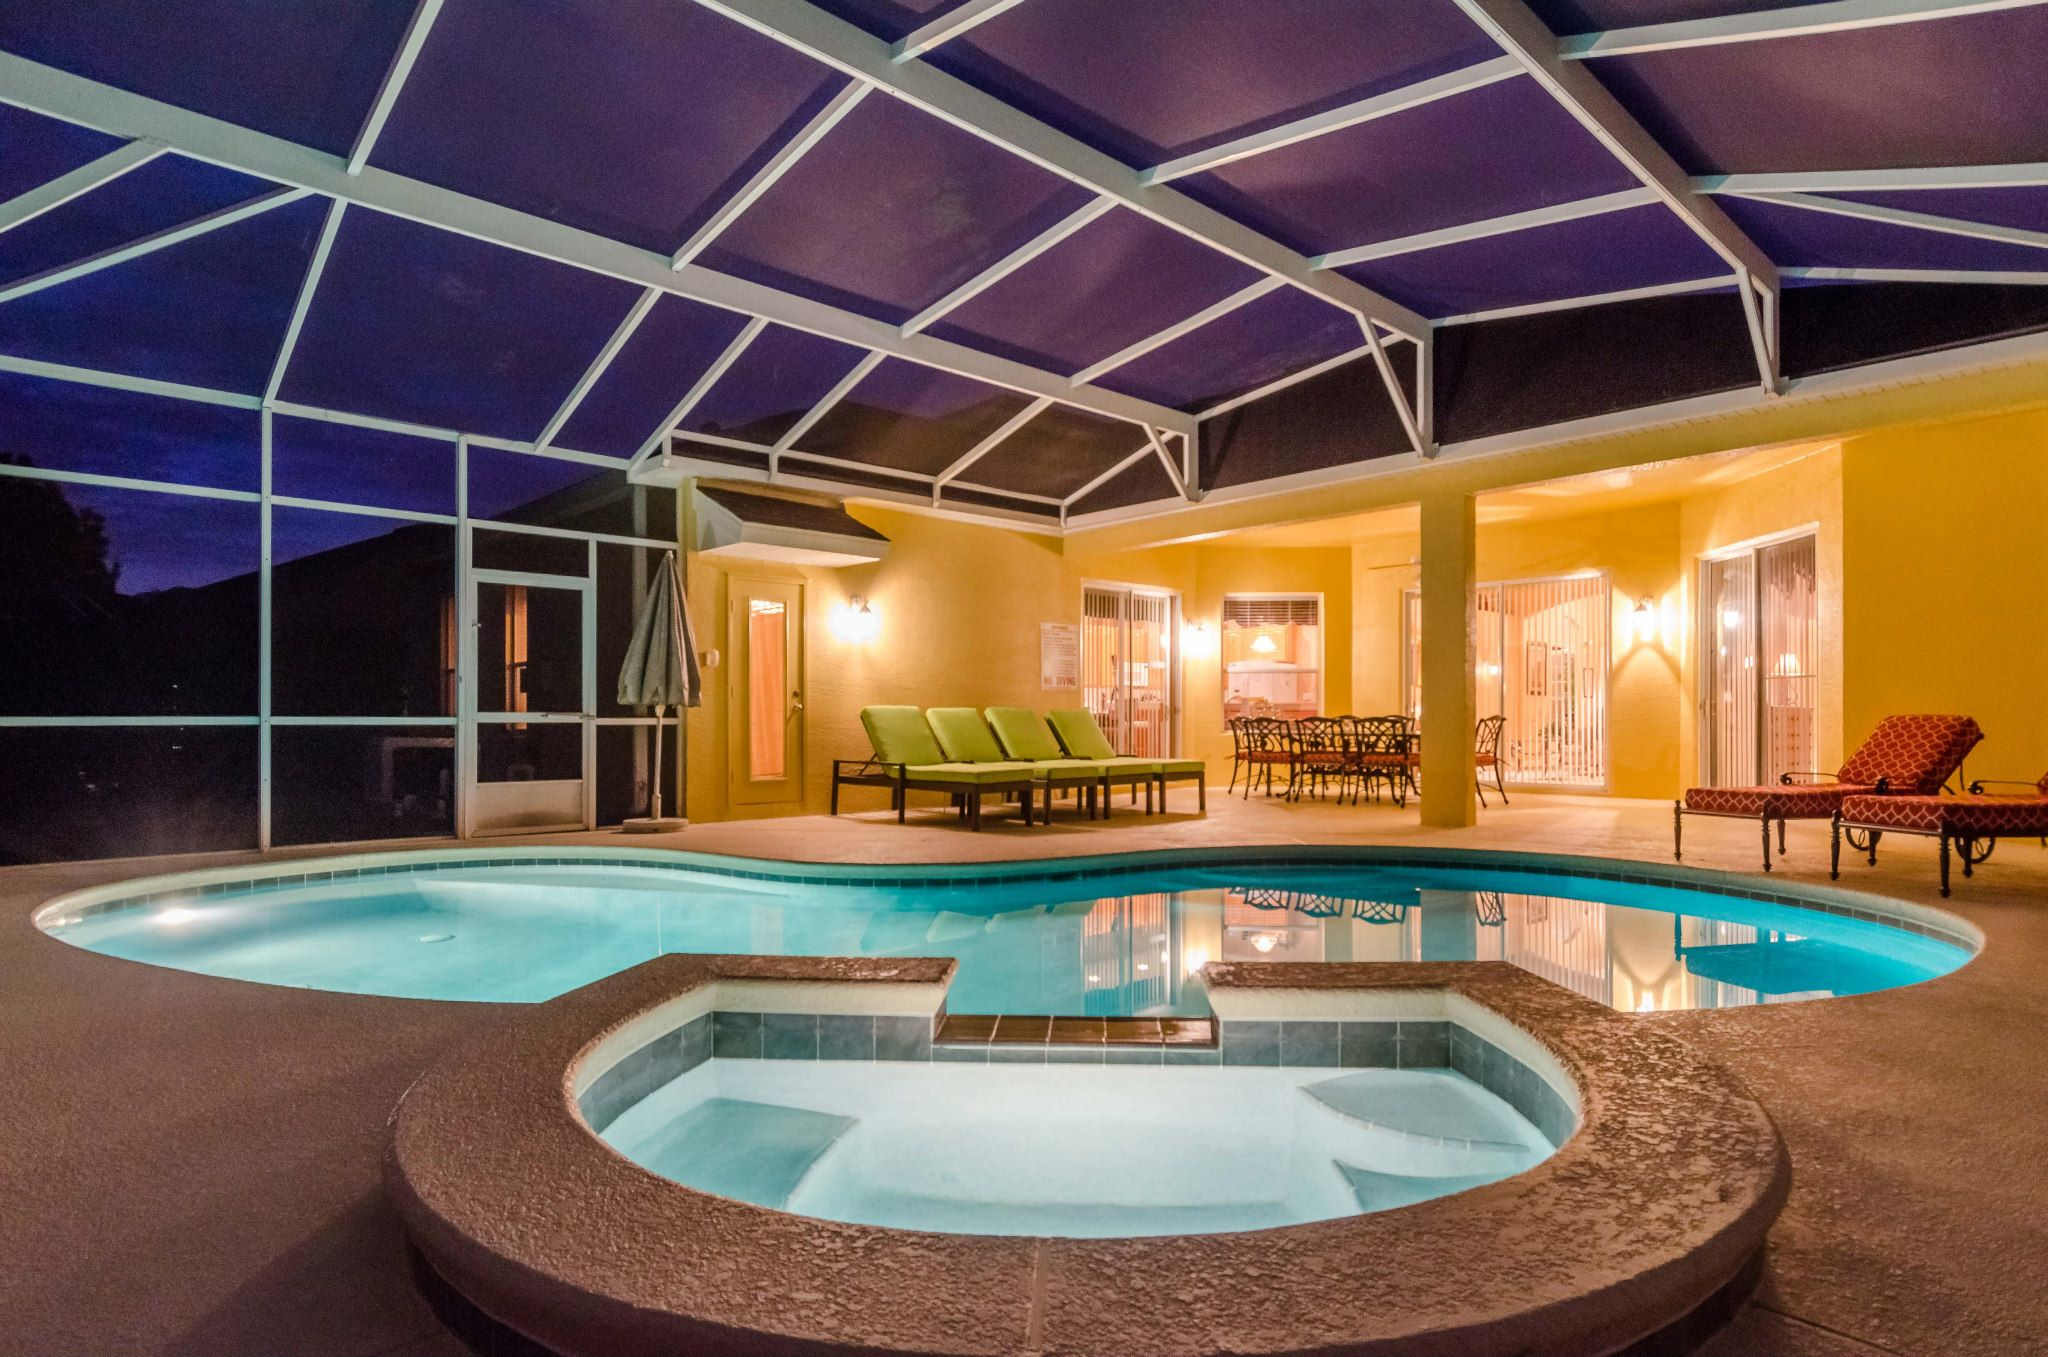 Villa Rental Near Disney - Check out this pool